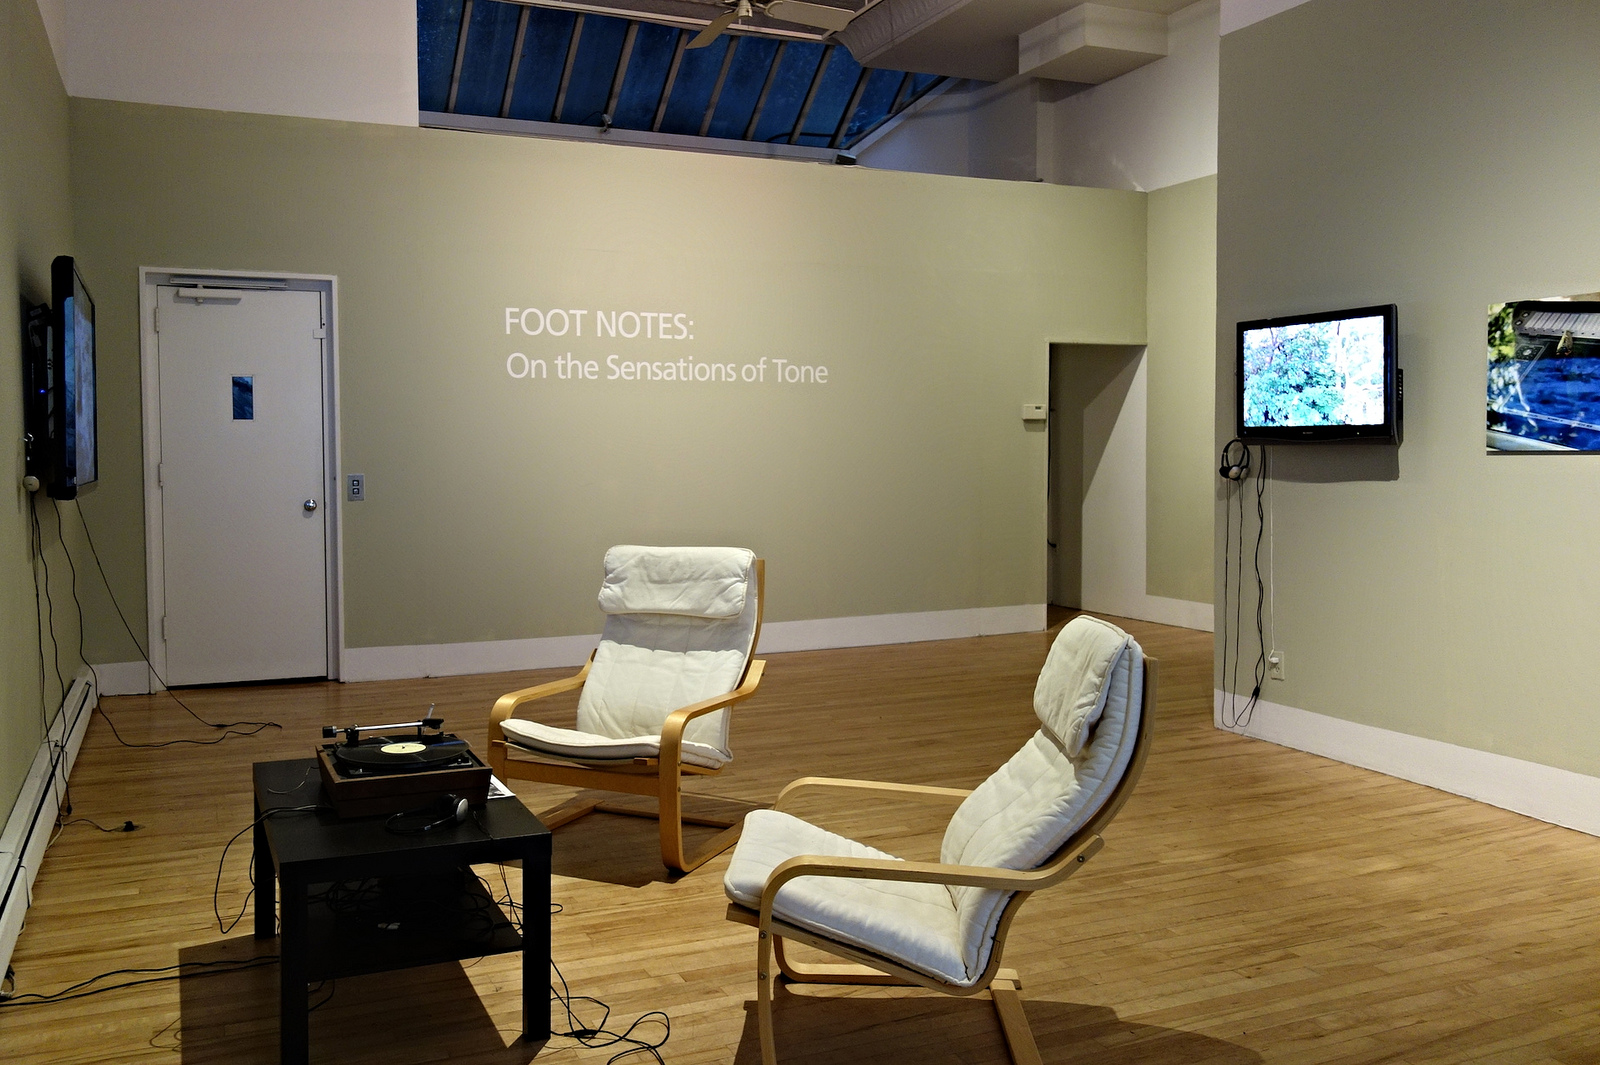 Installation view of 'Foot Notes' (photograph by the author for Hyperallergic)